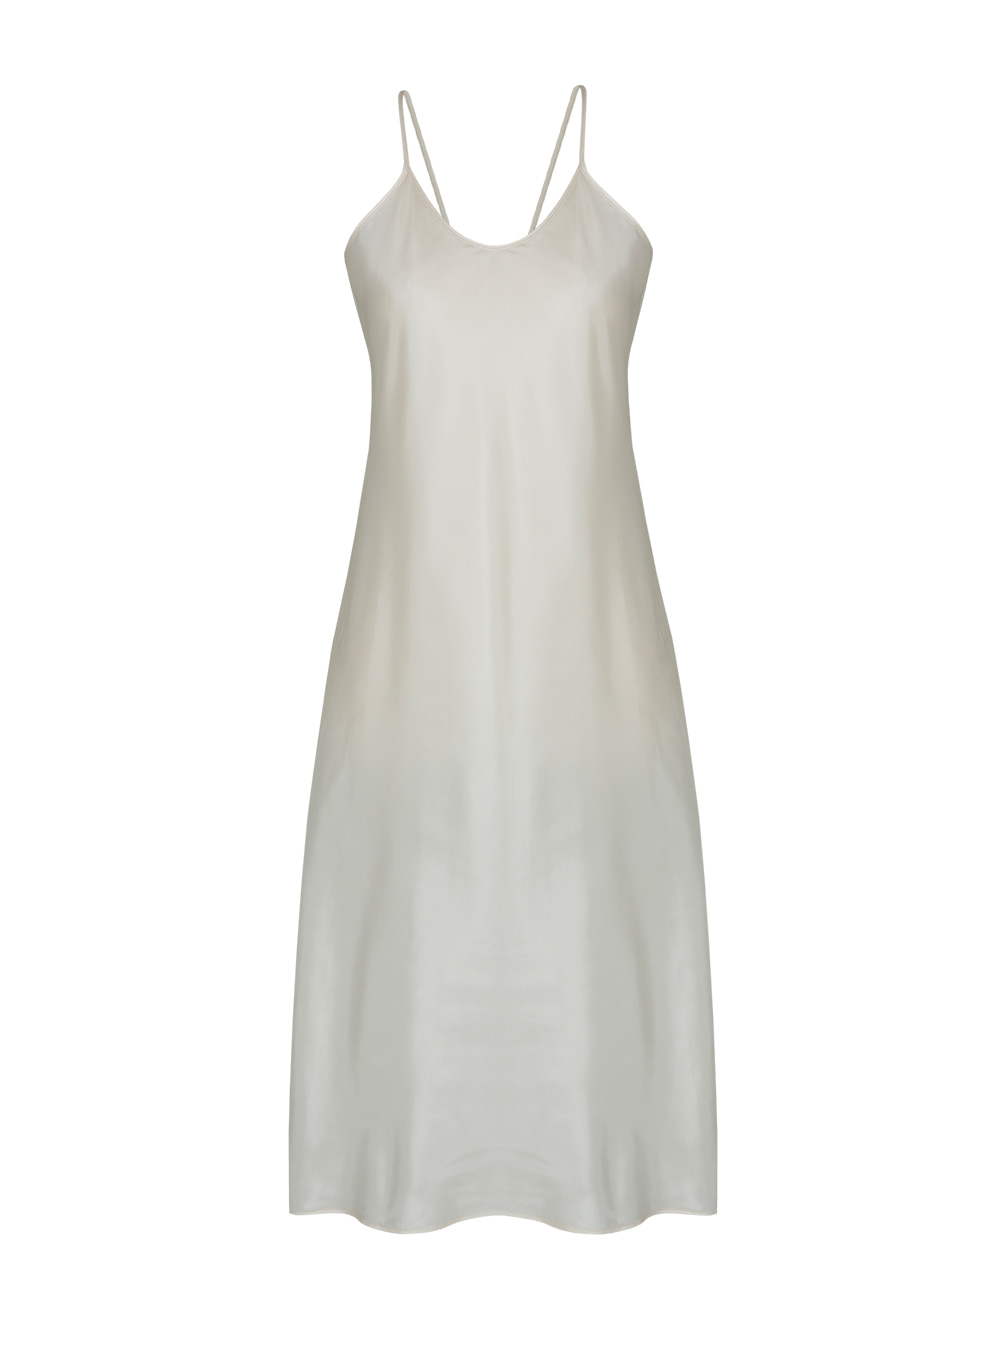 [ESSENTIAL] Camisole Dress Cream (비침방지)